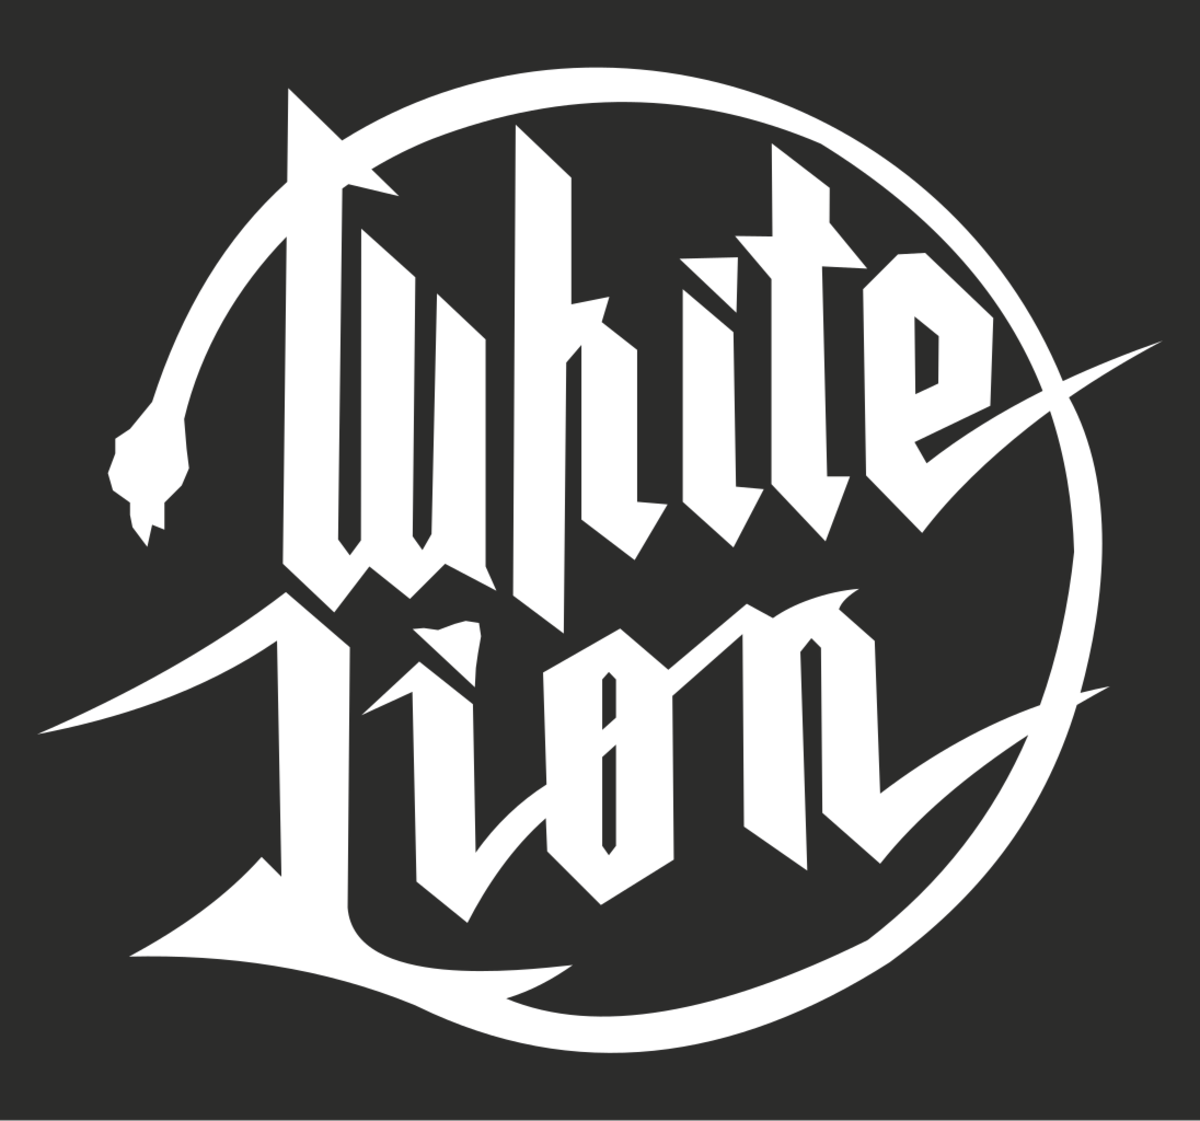 A Review of the Album Big Game 1989 by American Hard Rock Band White Lion